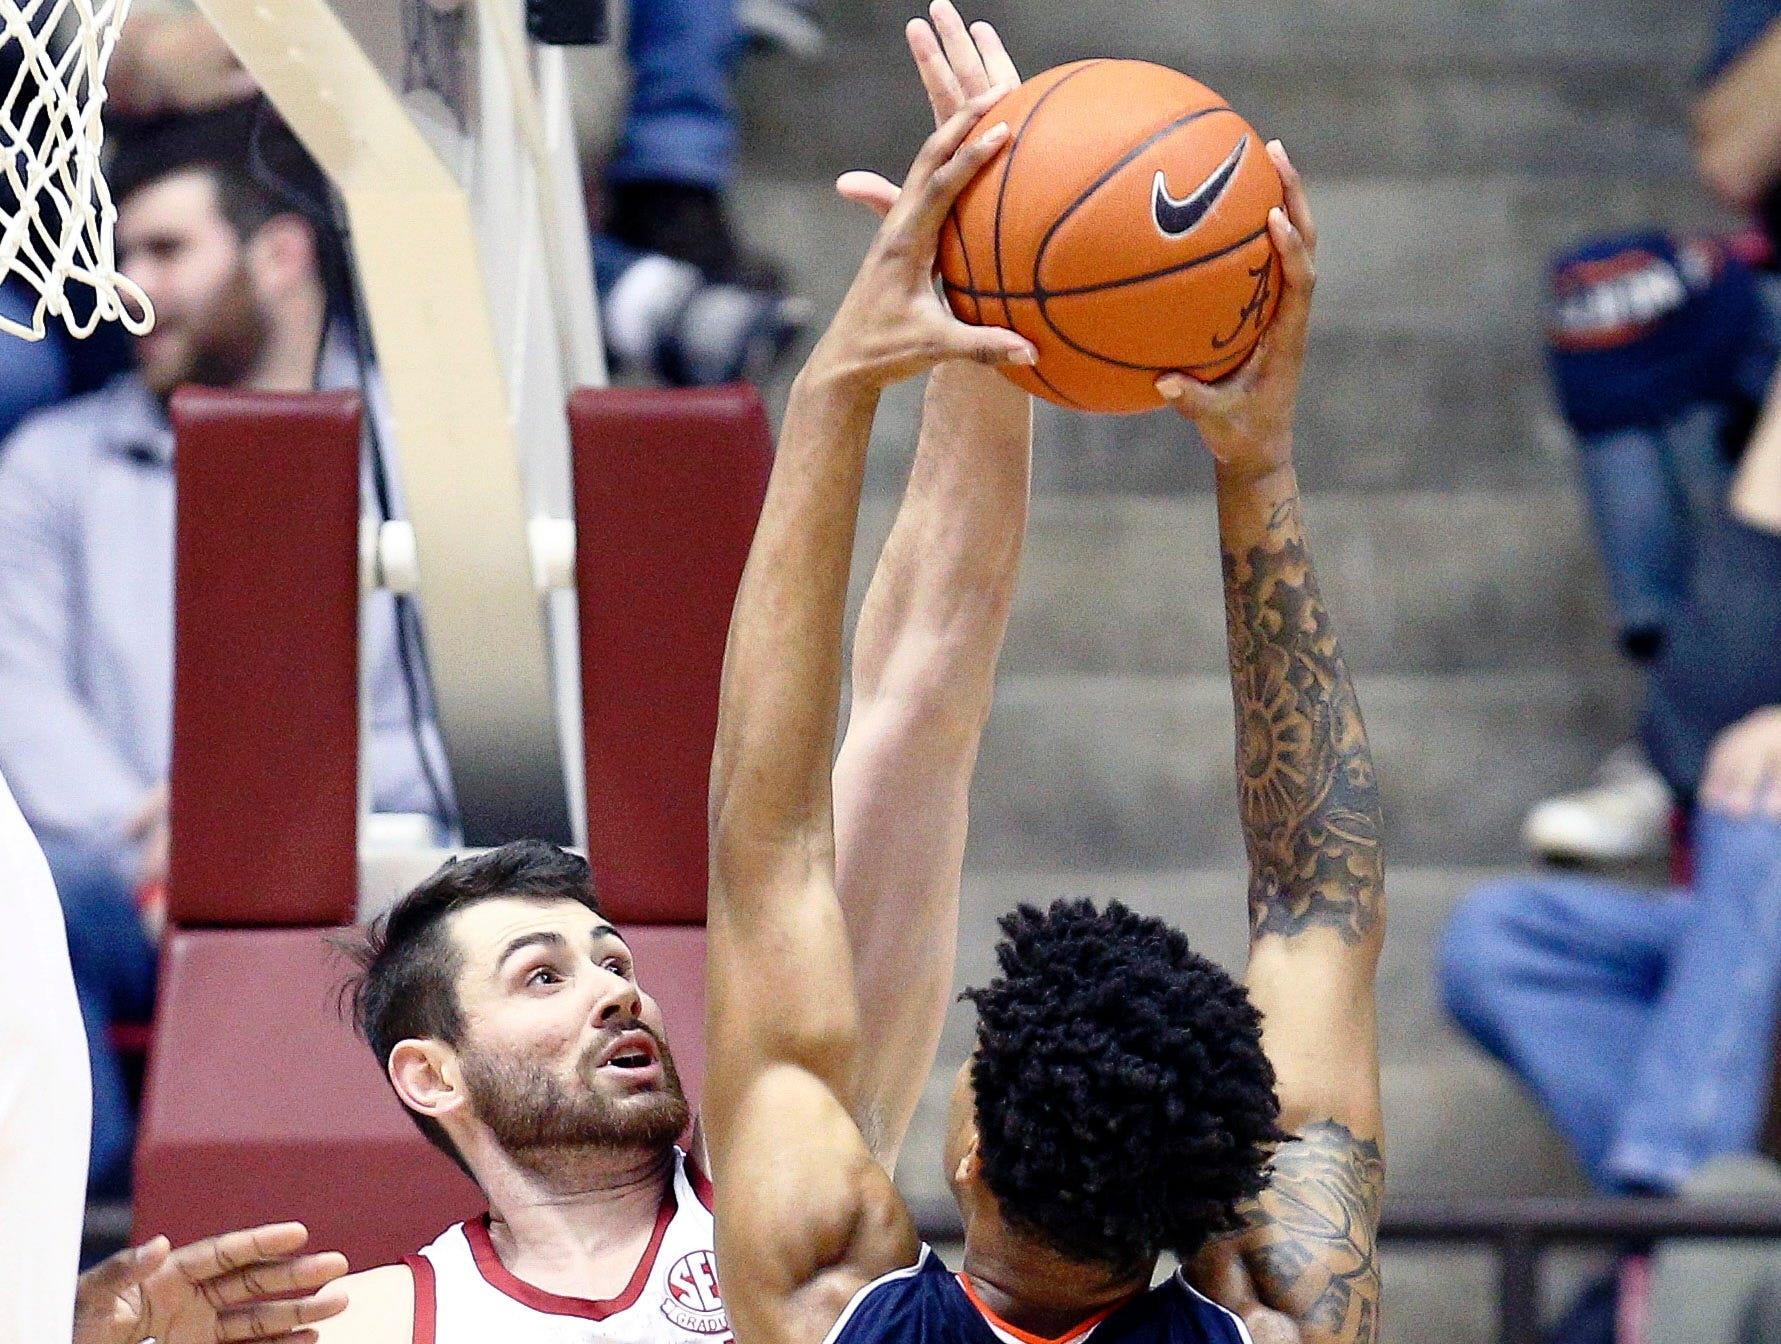 Mar 5, 2019; Tuscaloosa, AL, USA; Alabama Crimson Tide guard Riley Norris (1) goes up to block the shot of Auburn Tigers forward Chuma Okeke (5) during the second half at Coleman Coliseum. Mandatory Credit: Marvin Gentry-USA TODAY Sports